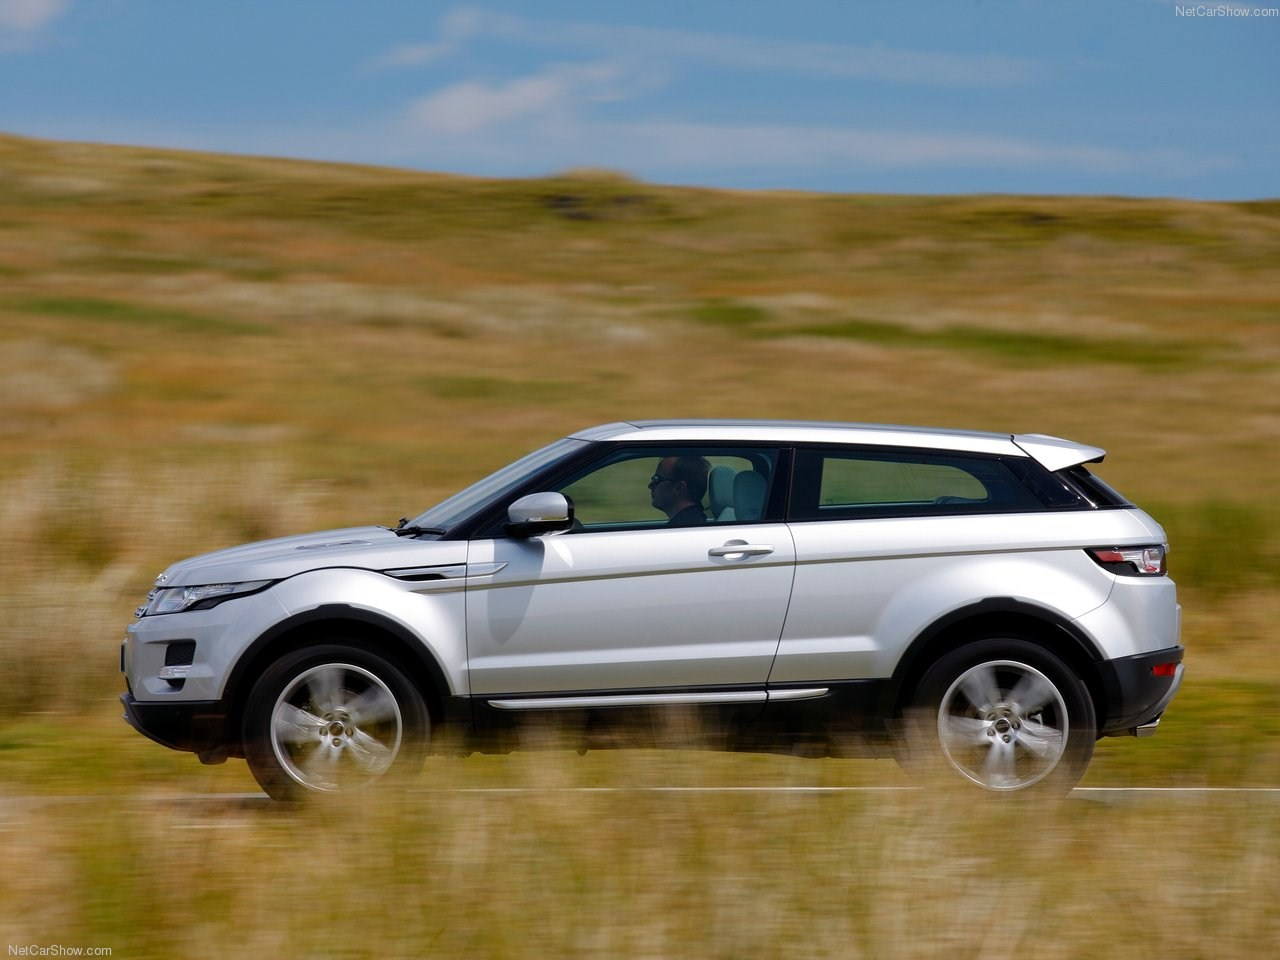 Land Rover Range Rover Evoque Wallpapers Cars Prices